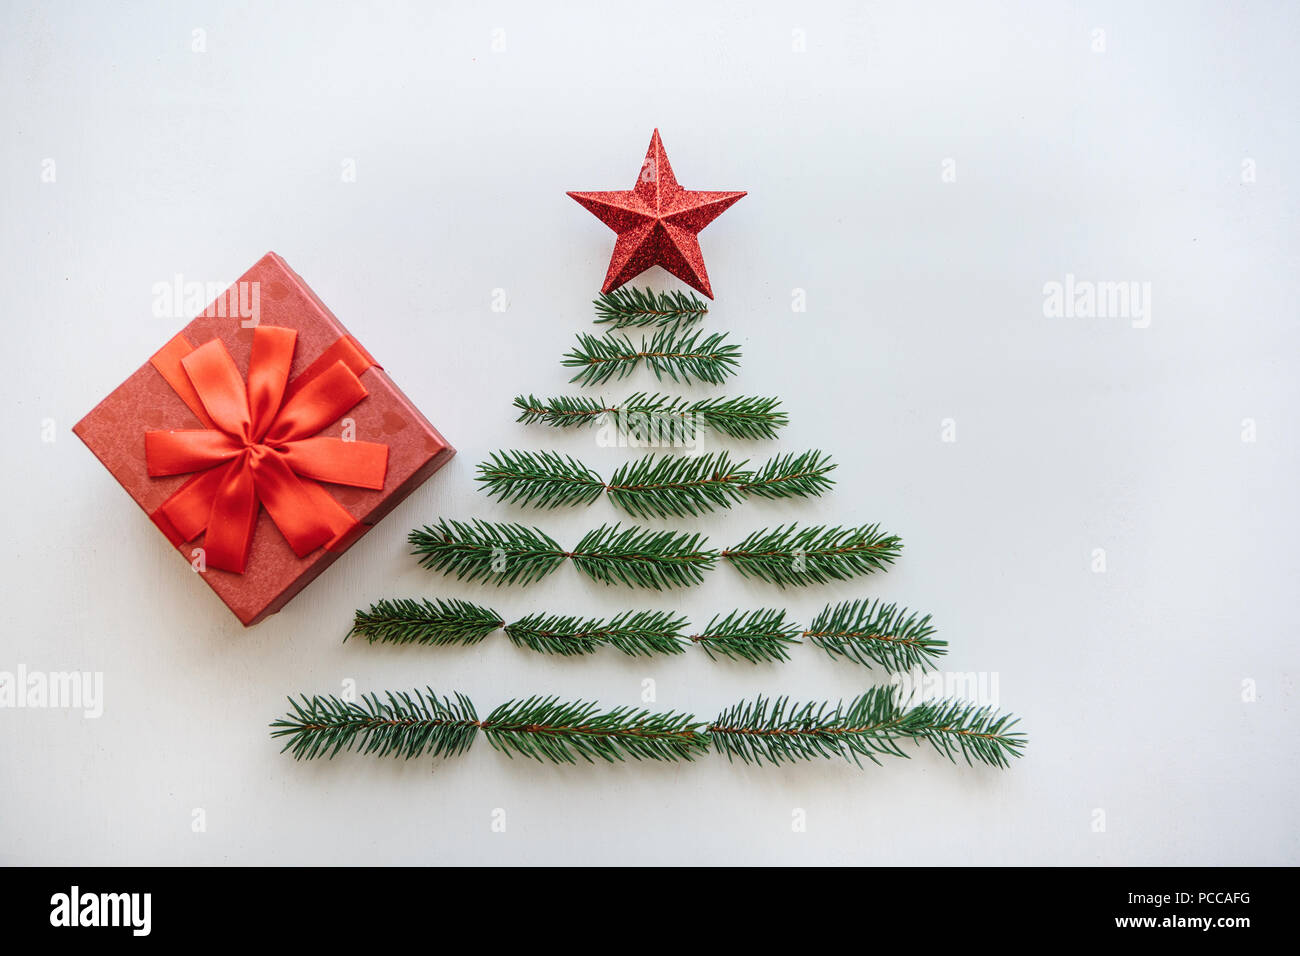 creative idea for christmas or new year theme a creative christmas or new year tree made of fir branches and a star on top there is a gift to the red box